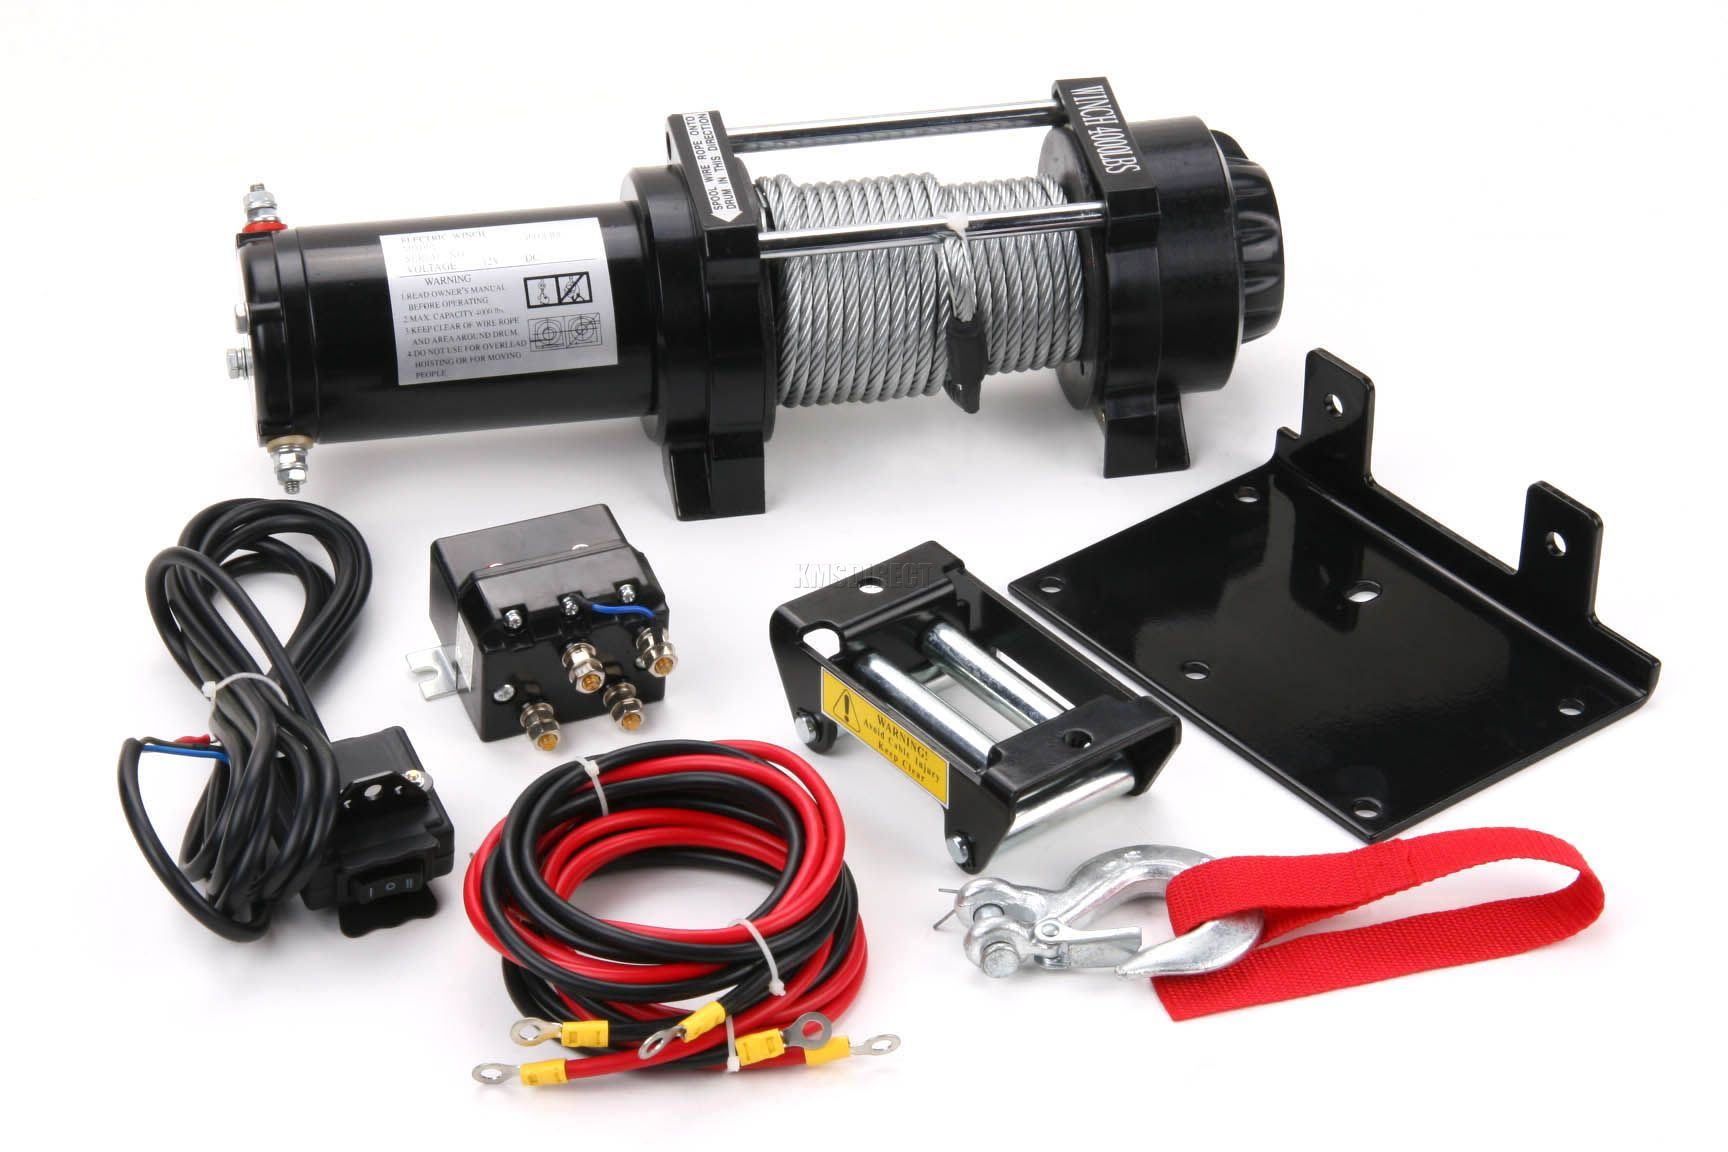 4000 lb electric winch 12v volt with remote control quad for Boat lift motors 12 volt